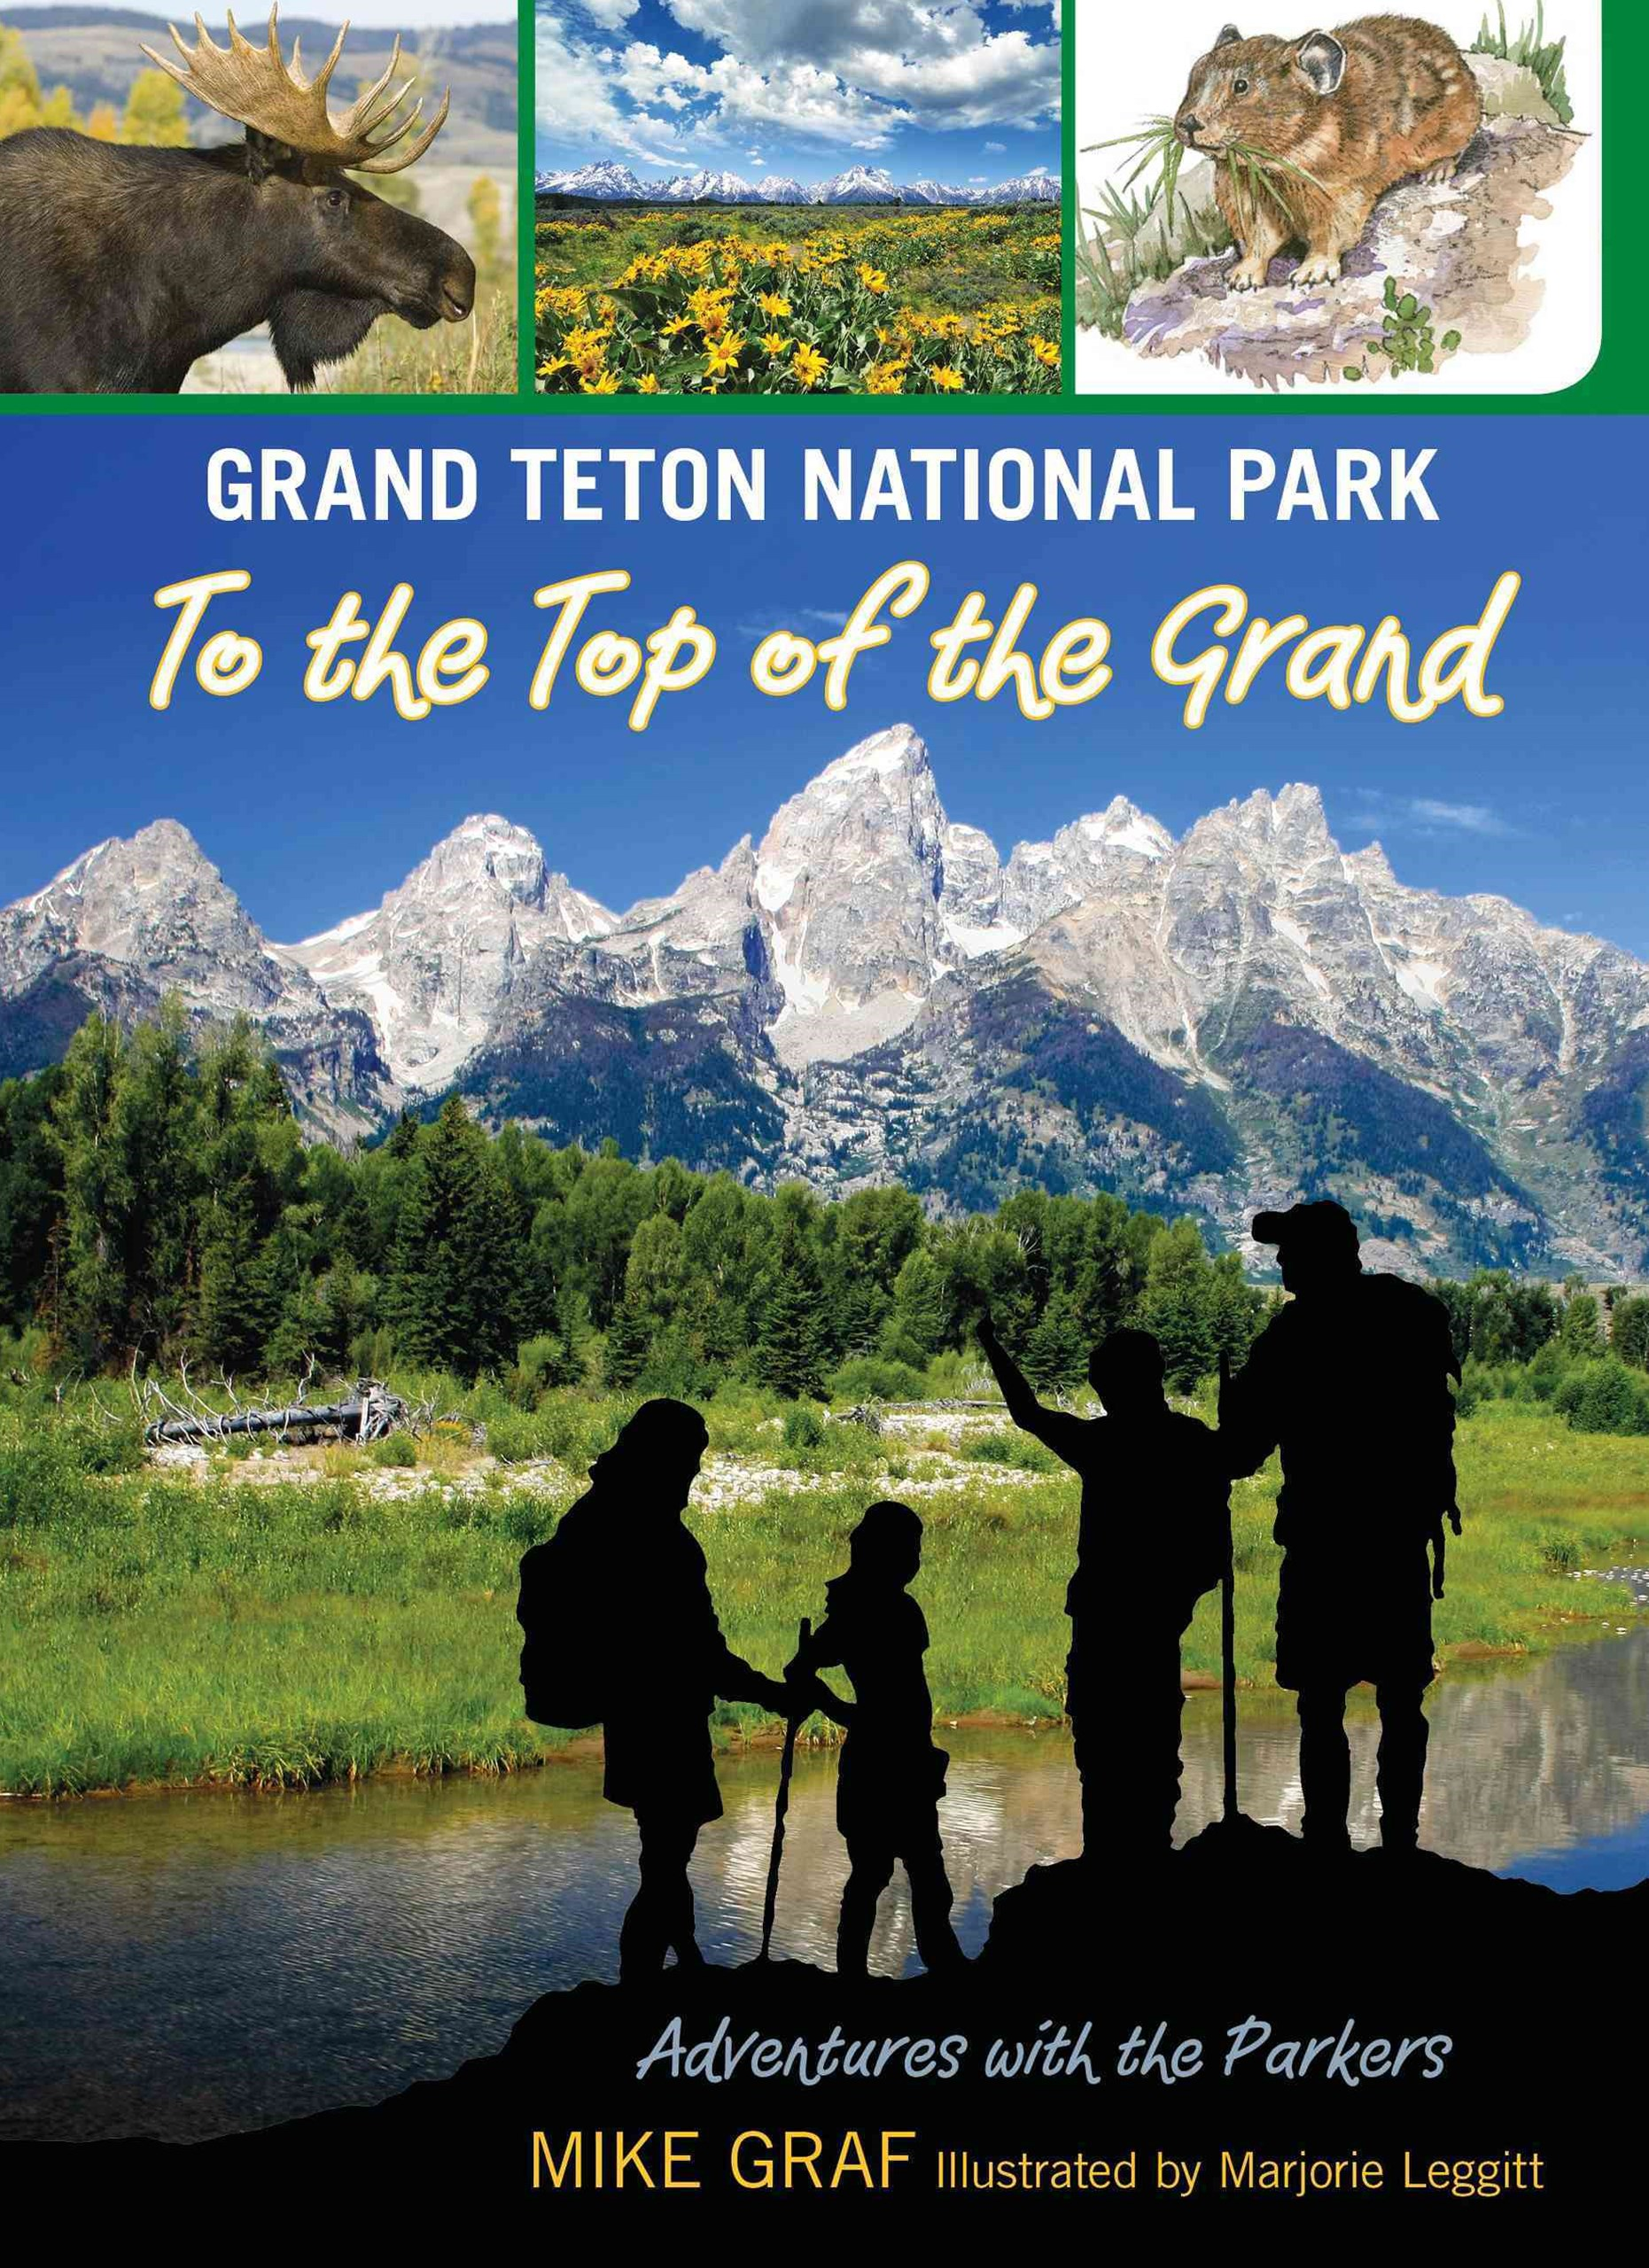 Grand Teton National Park to the Top of the Grand